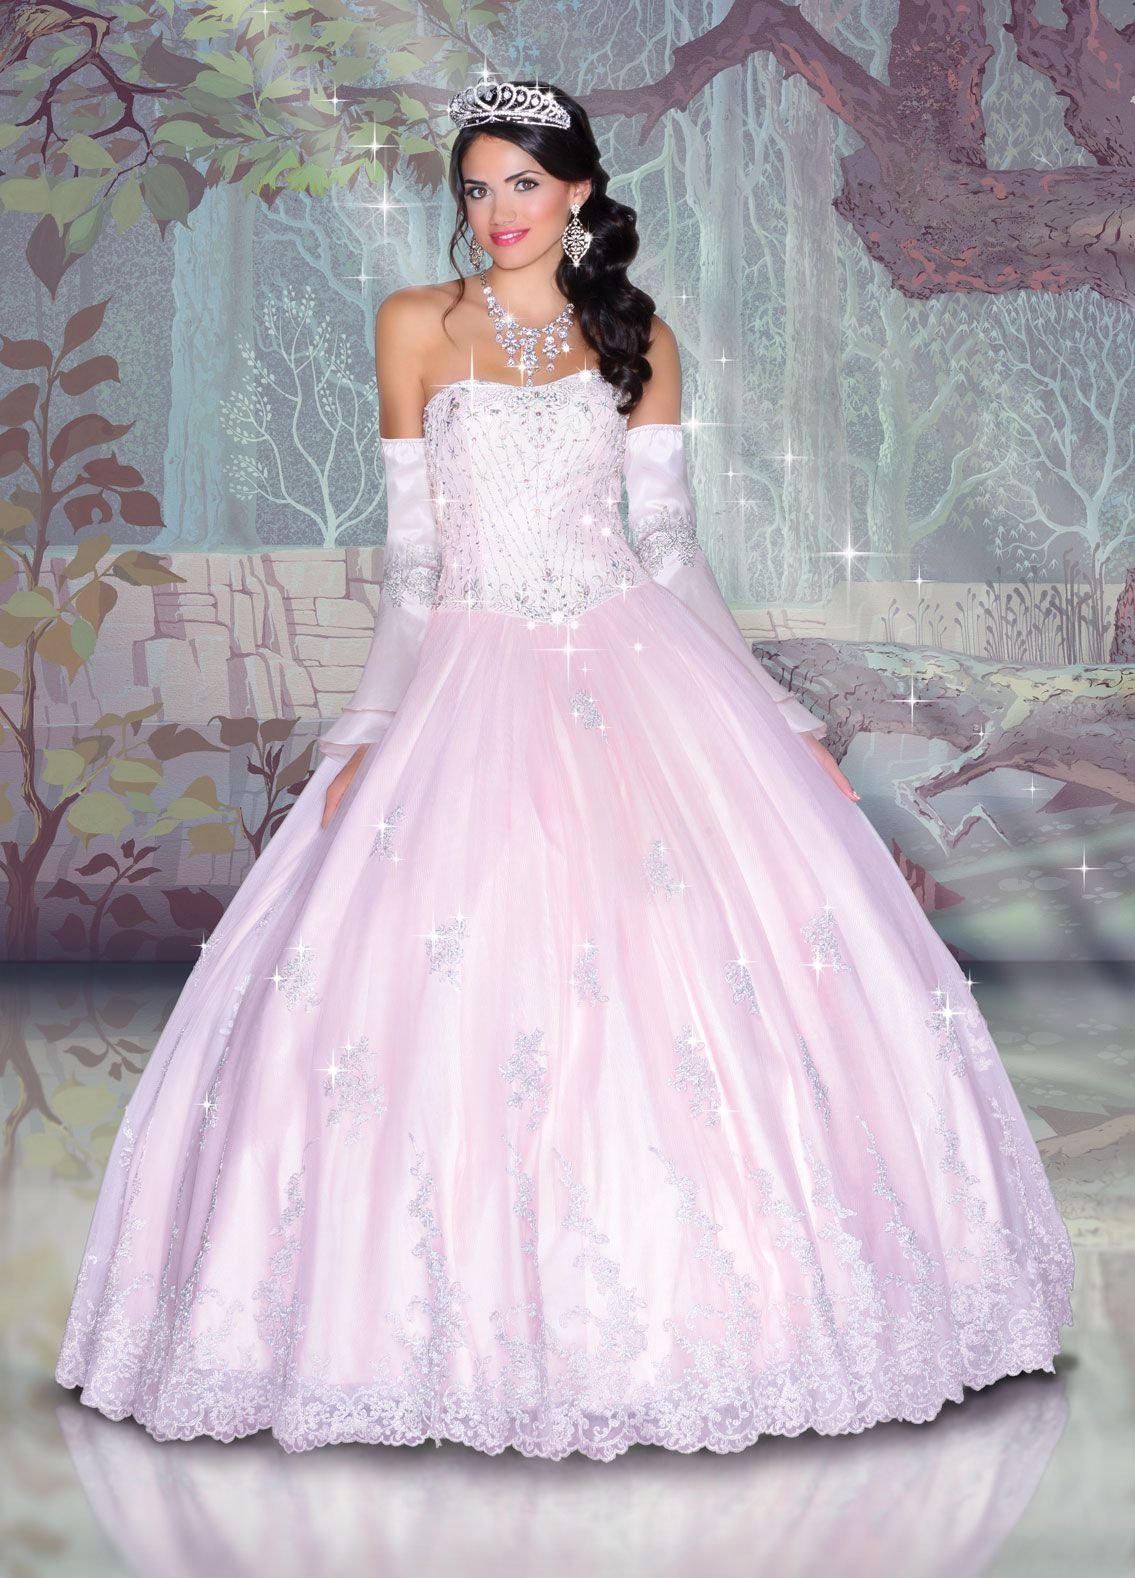 Sleeping Beauty | Disney Royal Ball | Disney Royal Ball | Pinterest ...